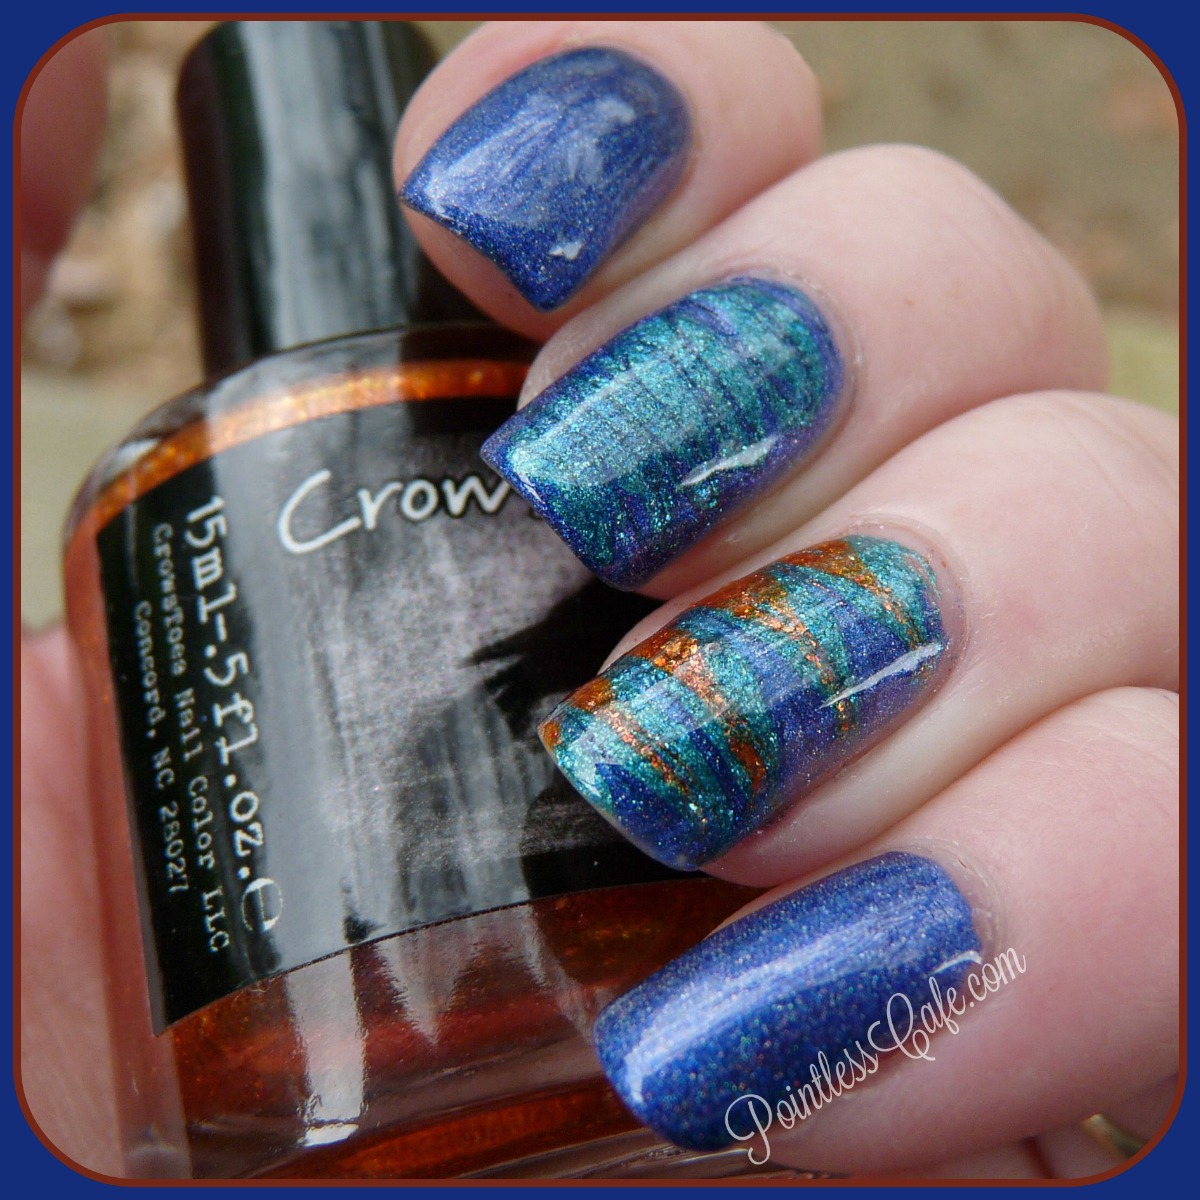 Crowstoes Nail Color: Halloween Trio 2015 - Swatches and Review ...